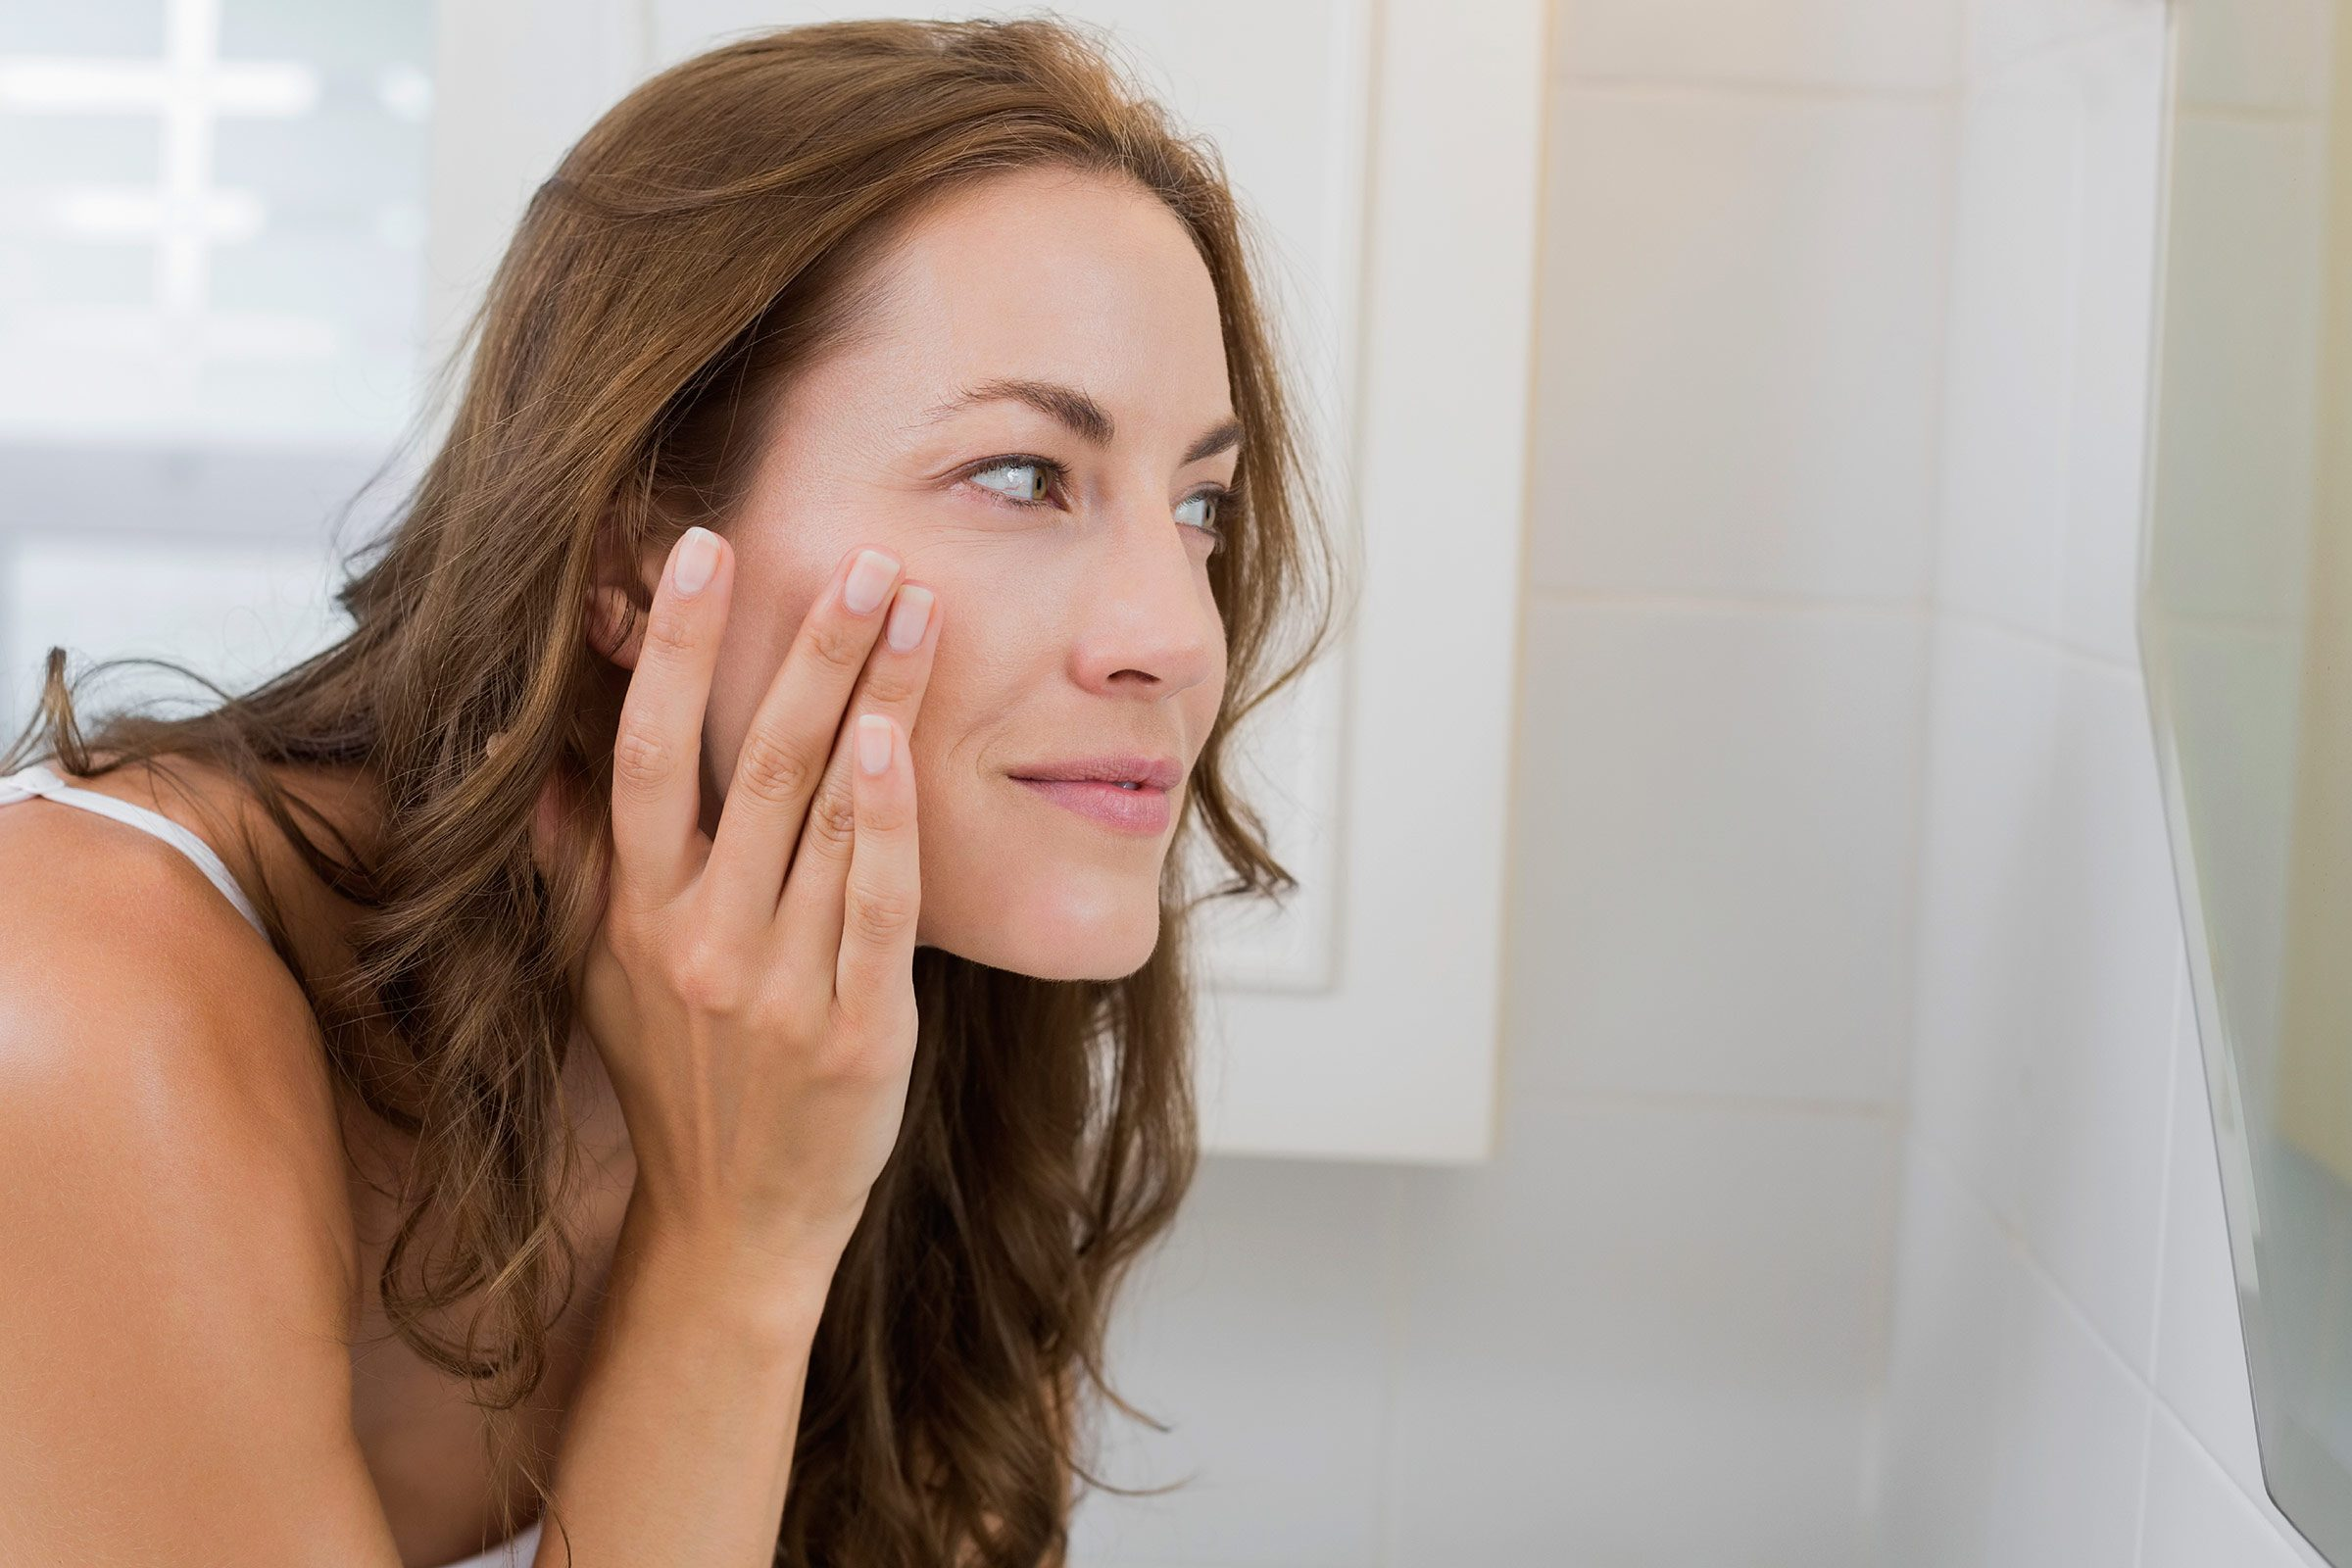 woman touching face and looking in the mirror